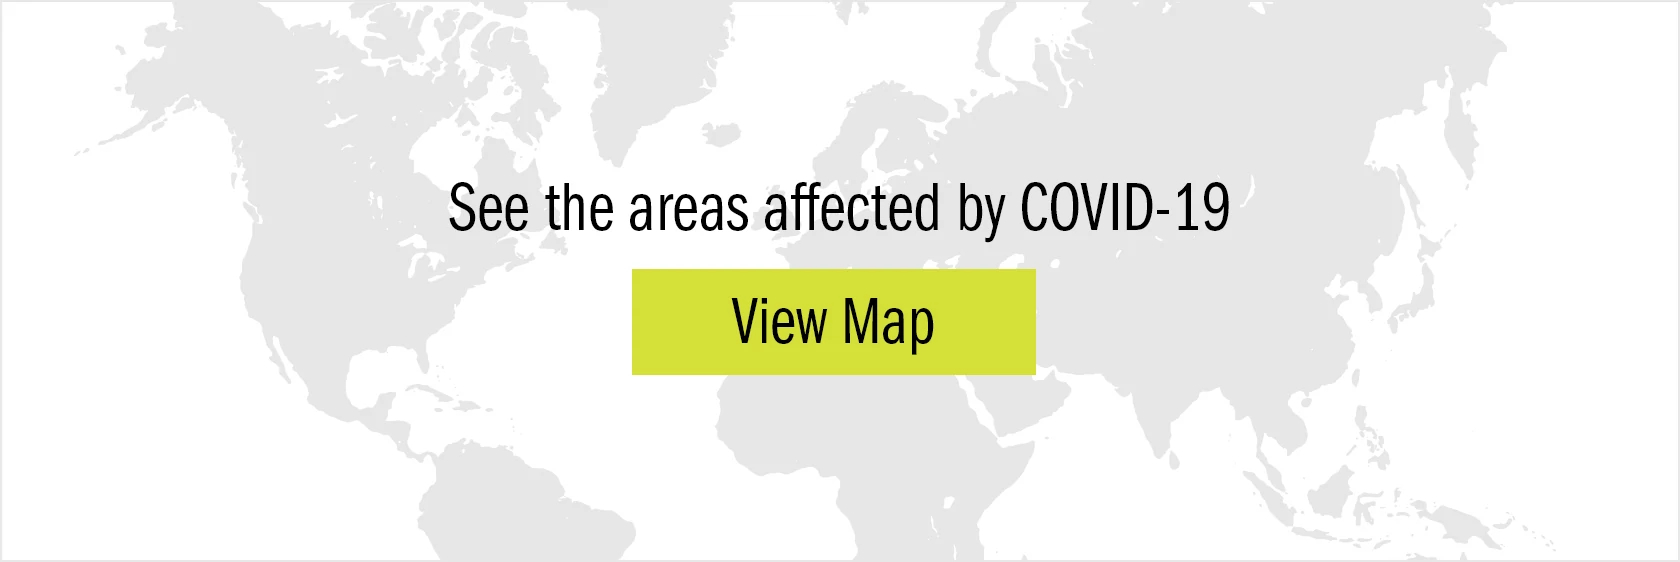 See the areas affected by COVID-19 in this interactive map